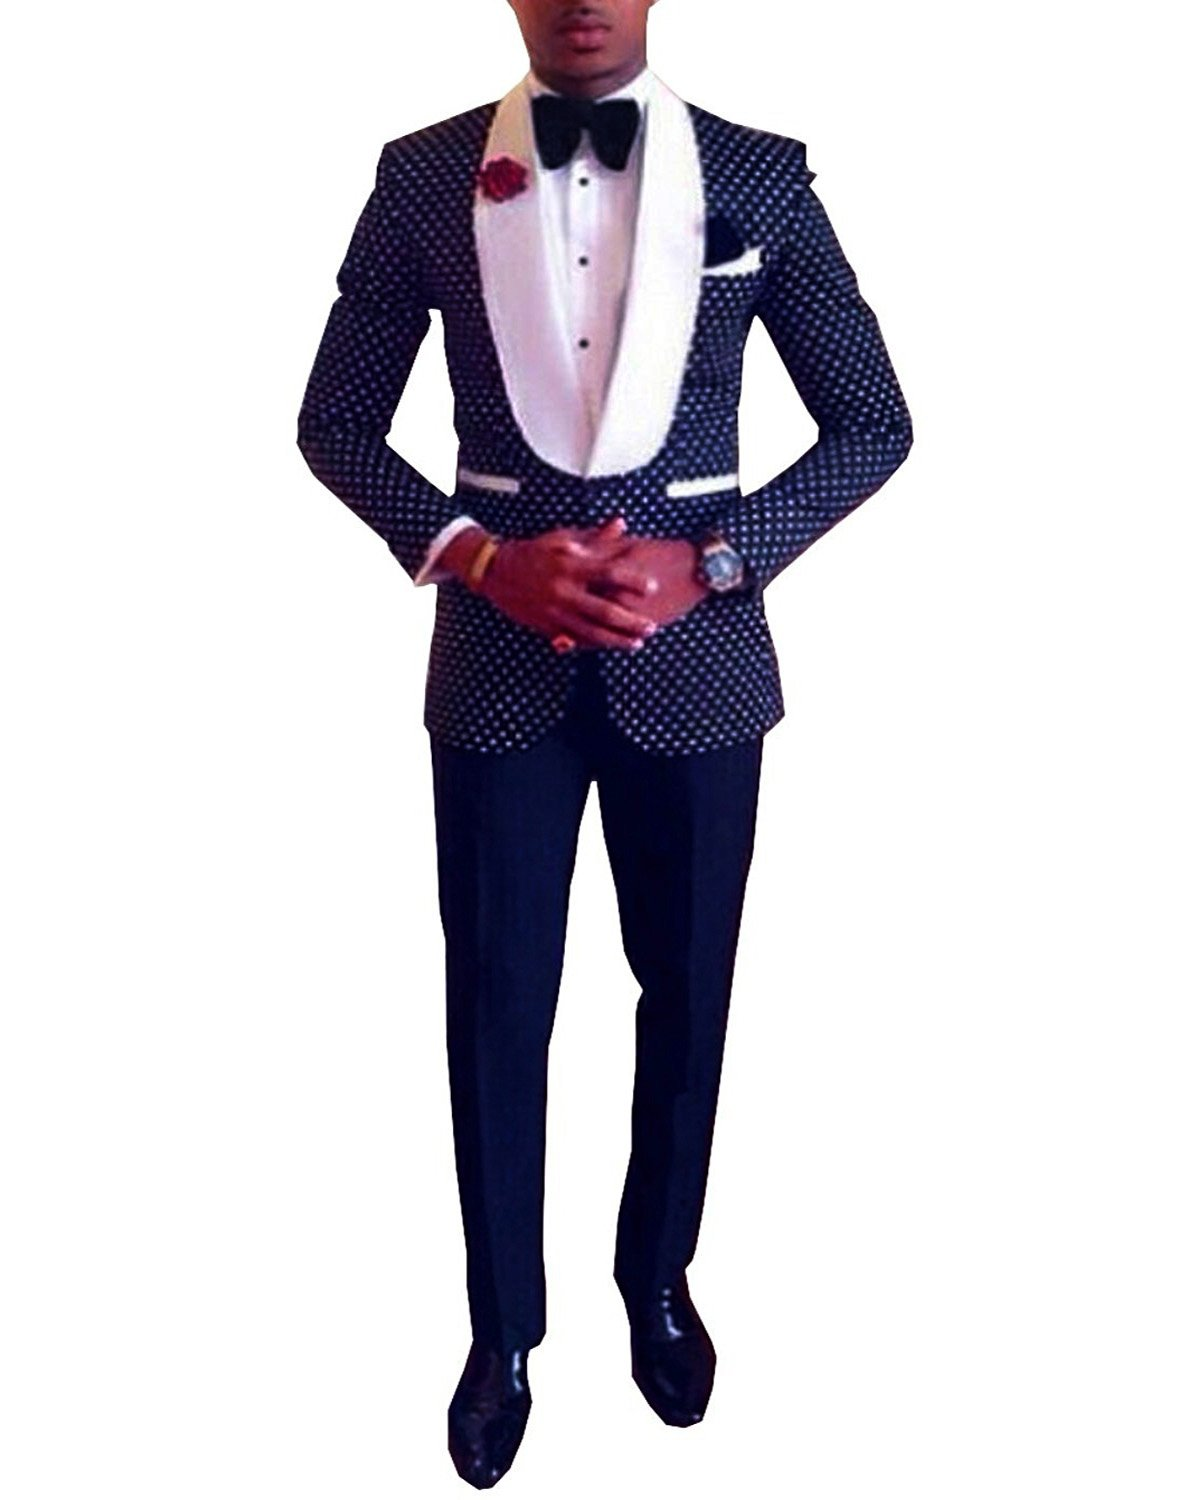 Pretygirl Men's Polka Dots Groomsmen Shawl Lapel Suit/Bridegroom/Wedding/Prom Suits (Suit+Pants) (38S,Navy Blue)